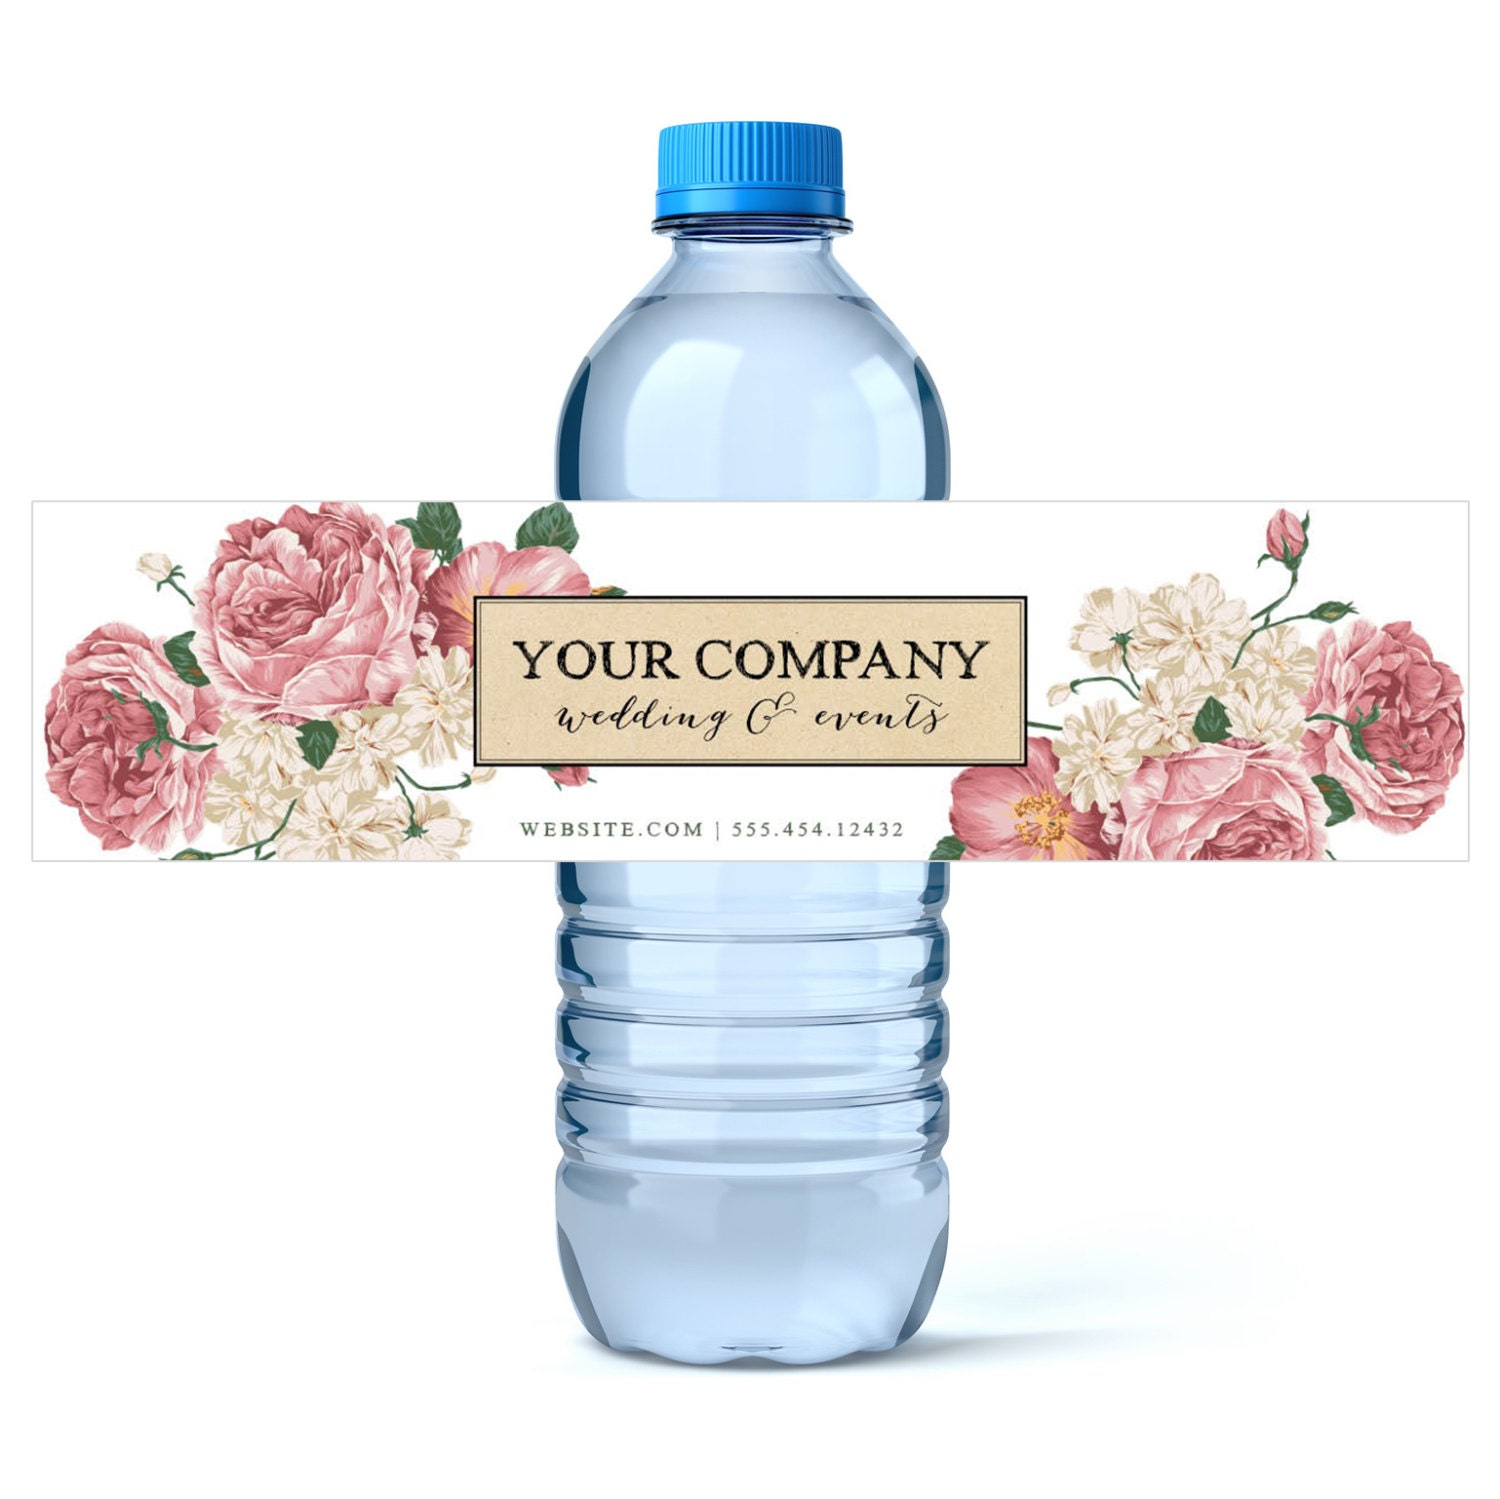 Custom water bottle labels wedding planner business water for How to put labels on bottles